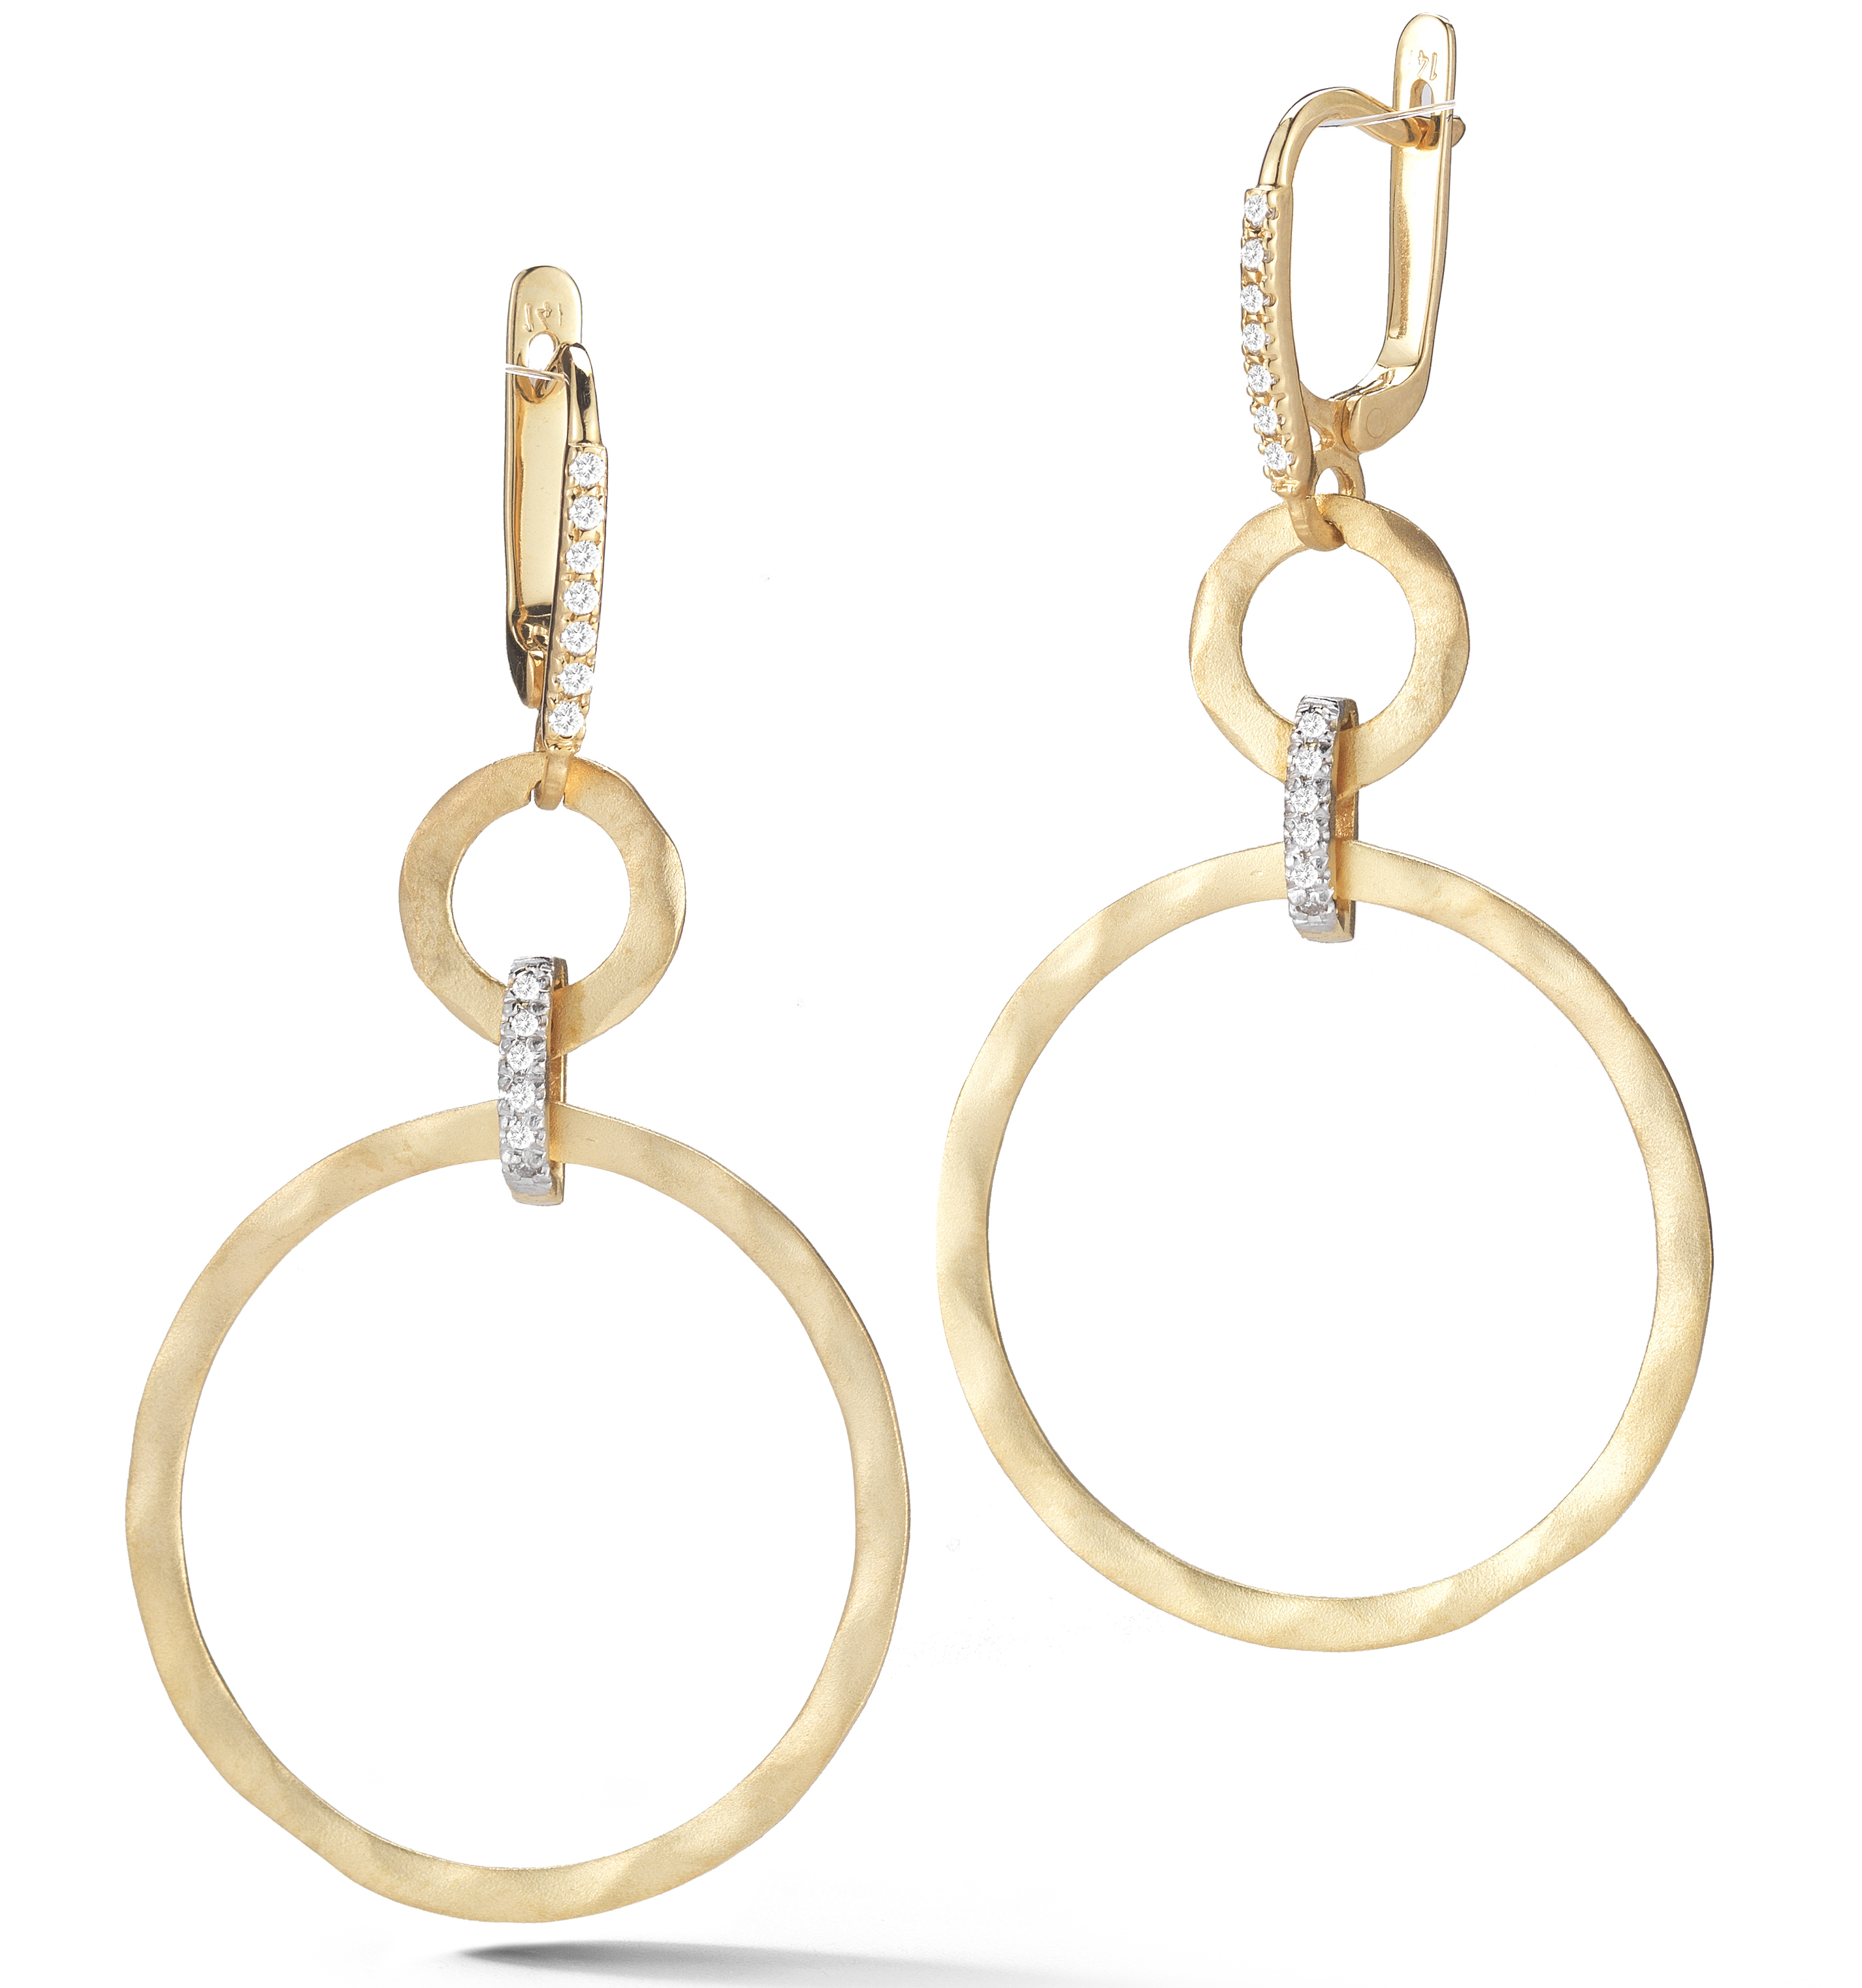 I. Reiss hammered circle drop earrings | JCK On Your Market